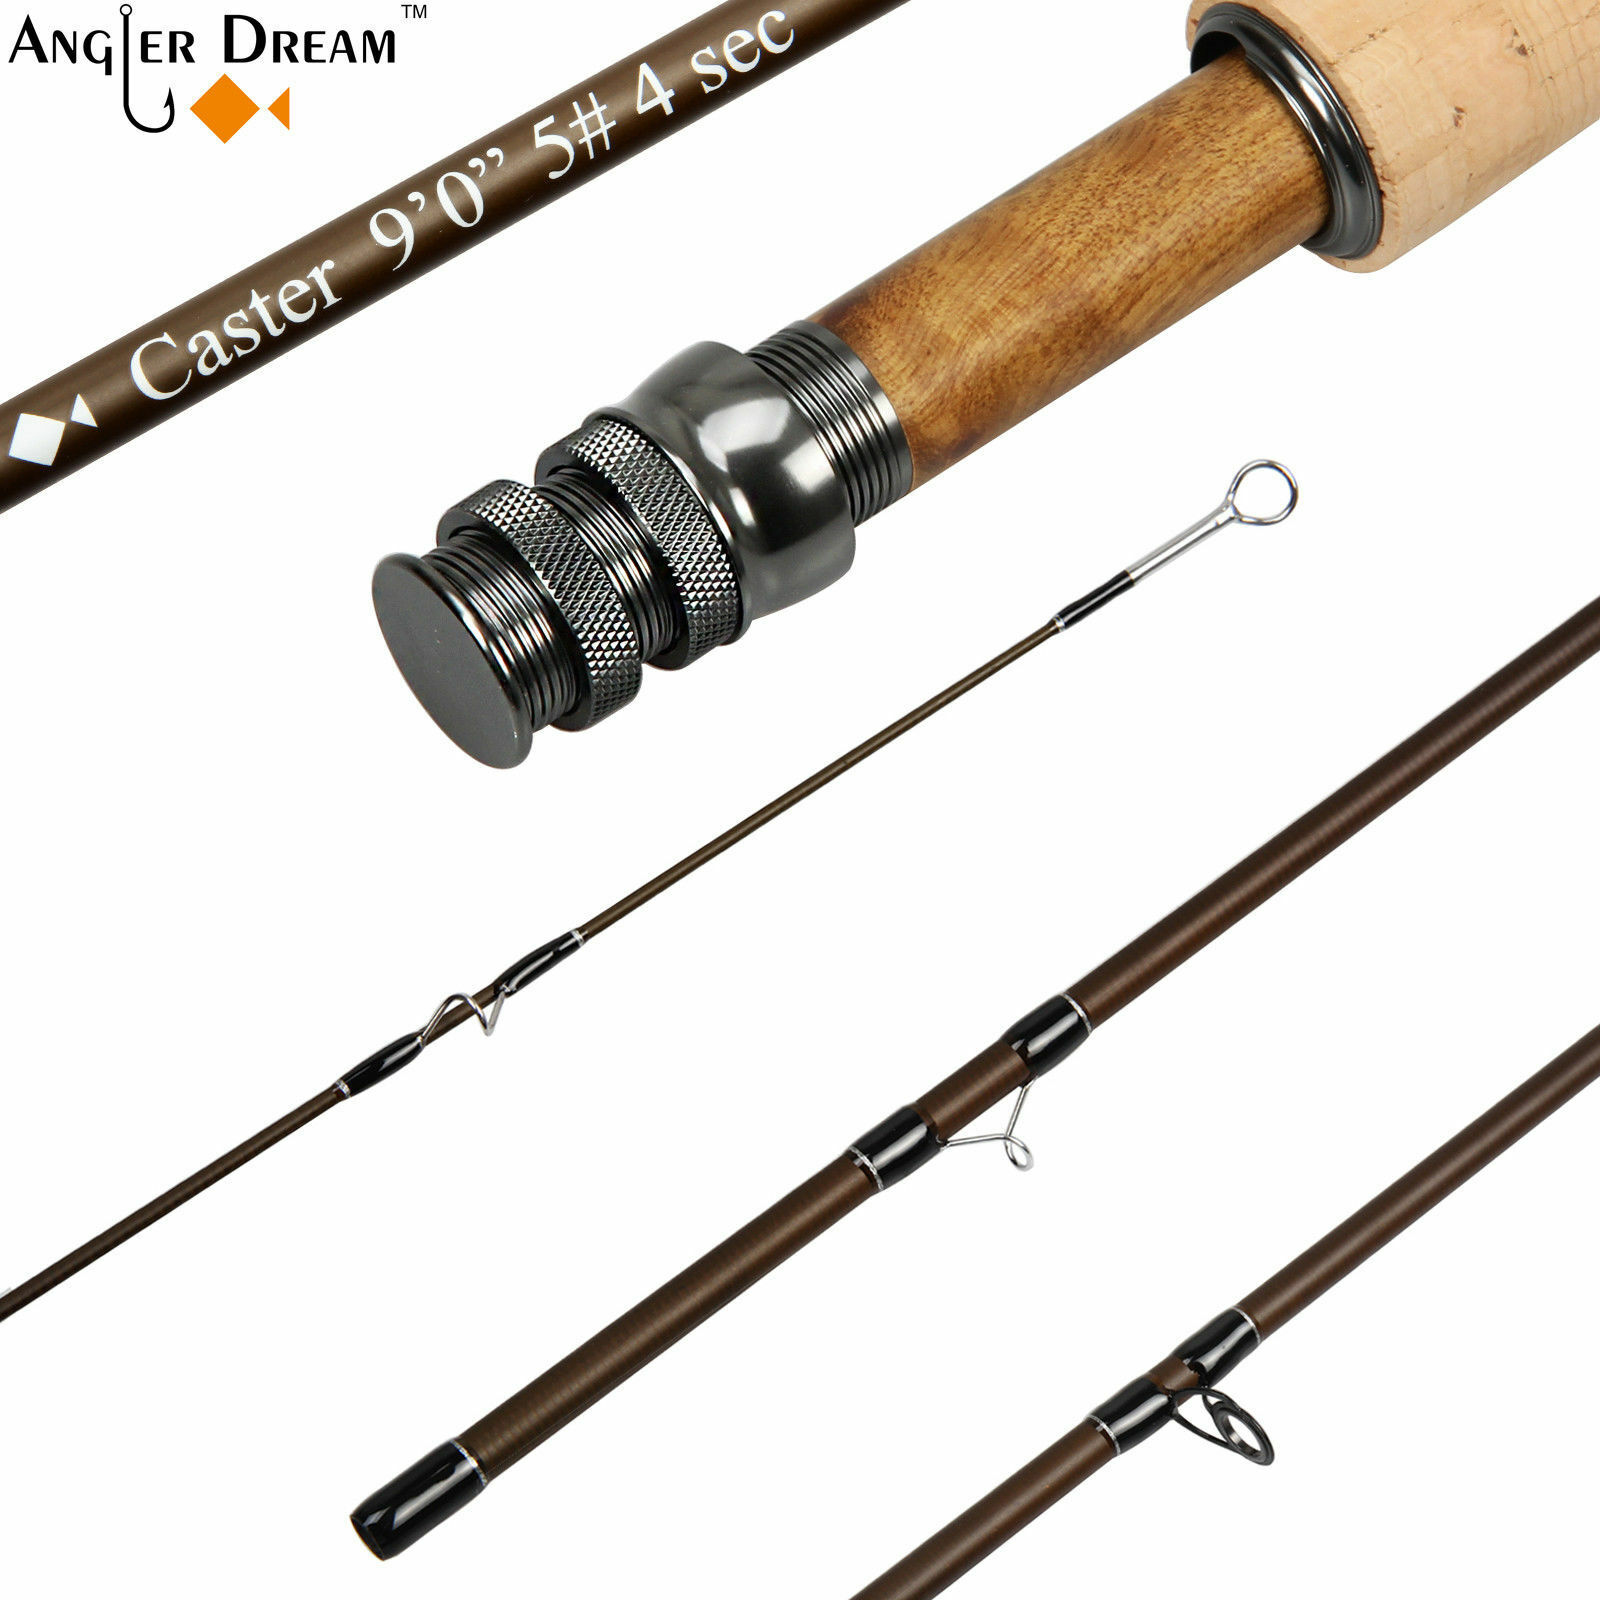 Caster Fly Rod 8'4  9' 3 5 8WT Graphite IM 8  30T Carbon Fiber Fly Fishing Rods